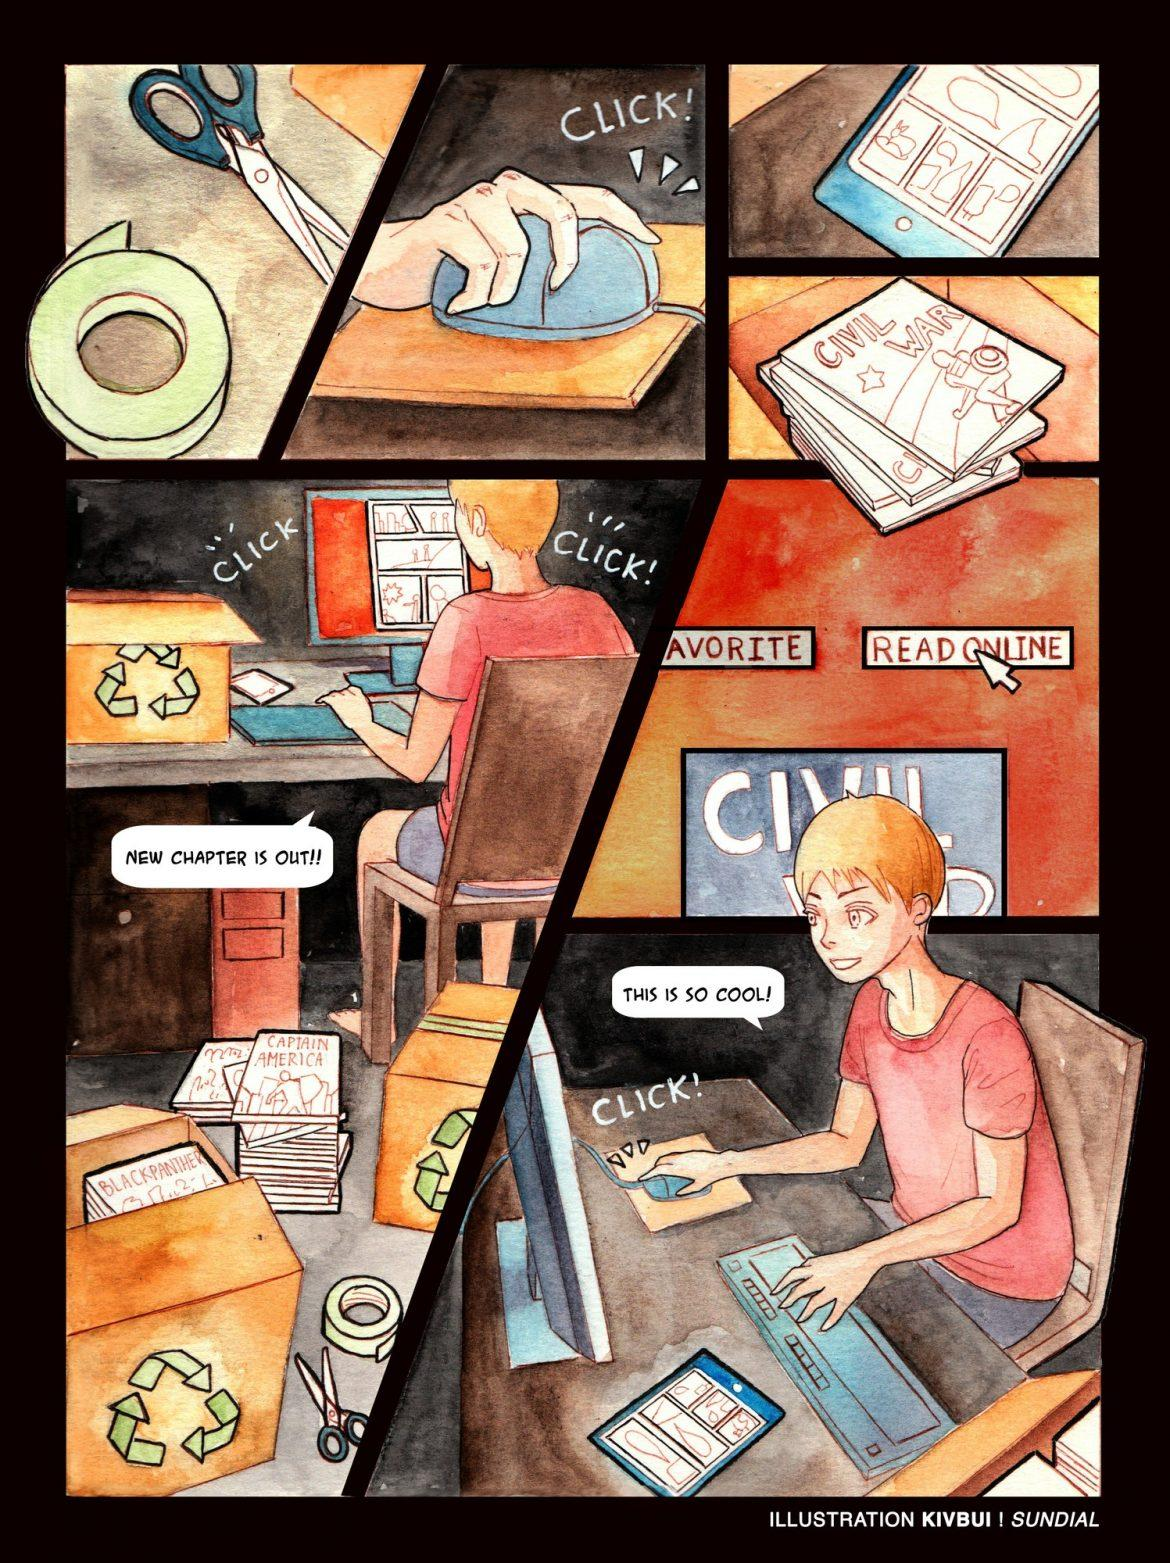 Comic shows a man reading online comics while his print comics are shoved into the recycle bin